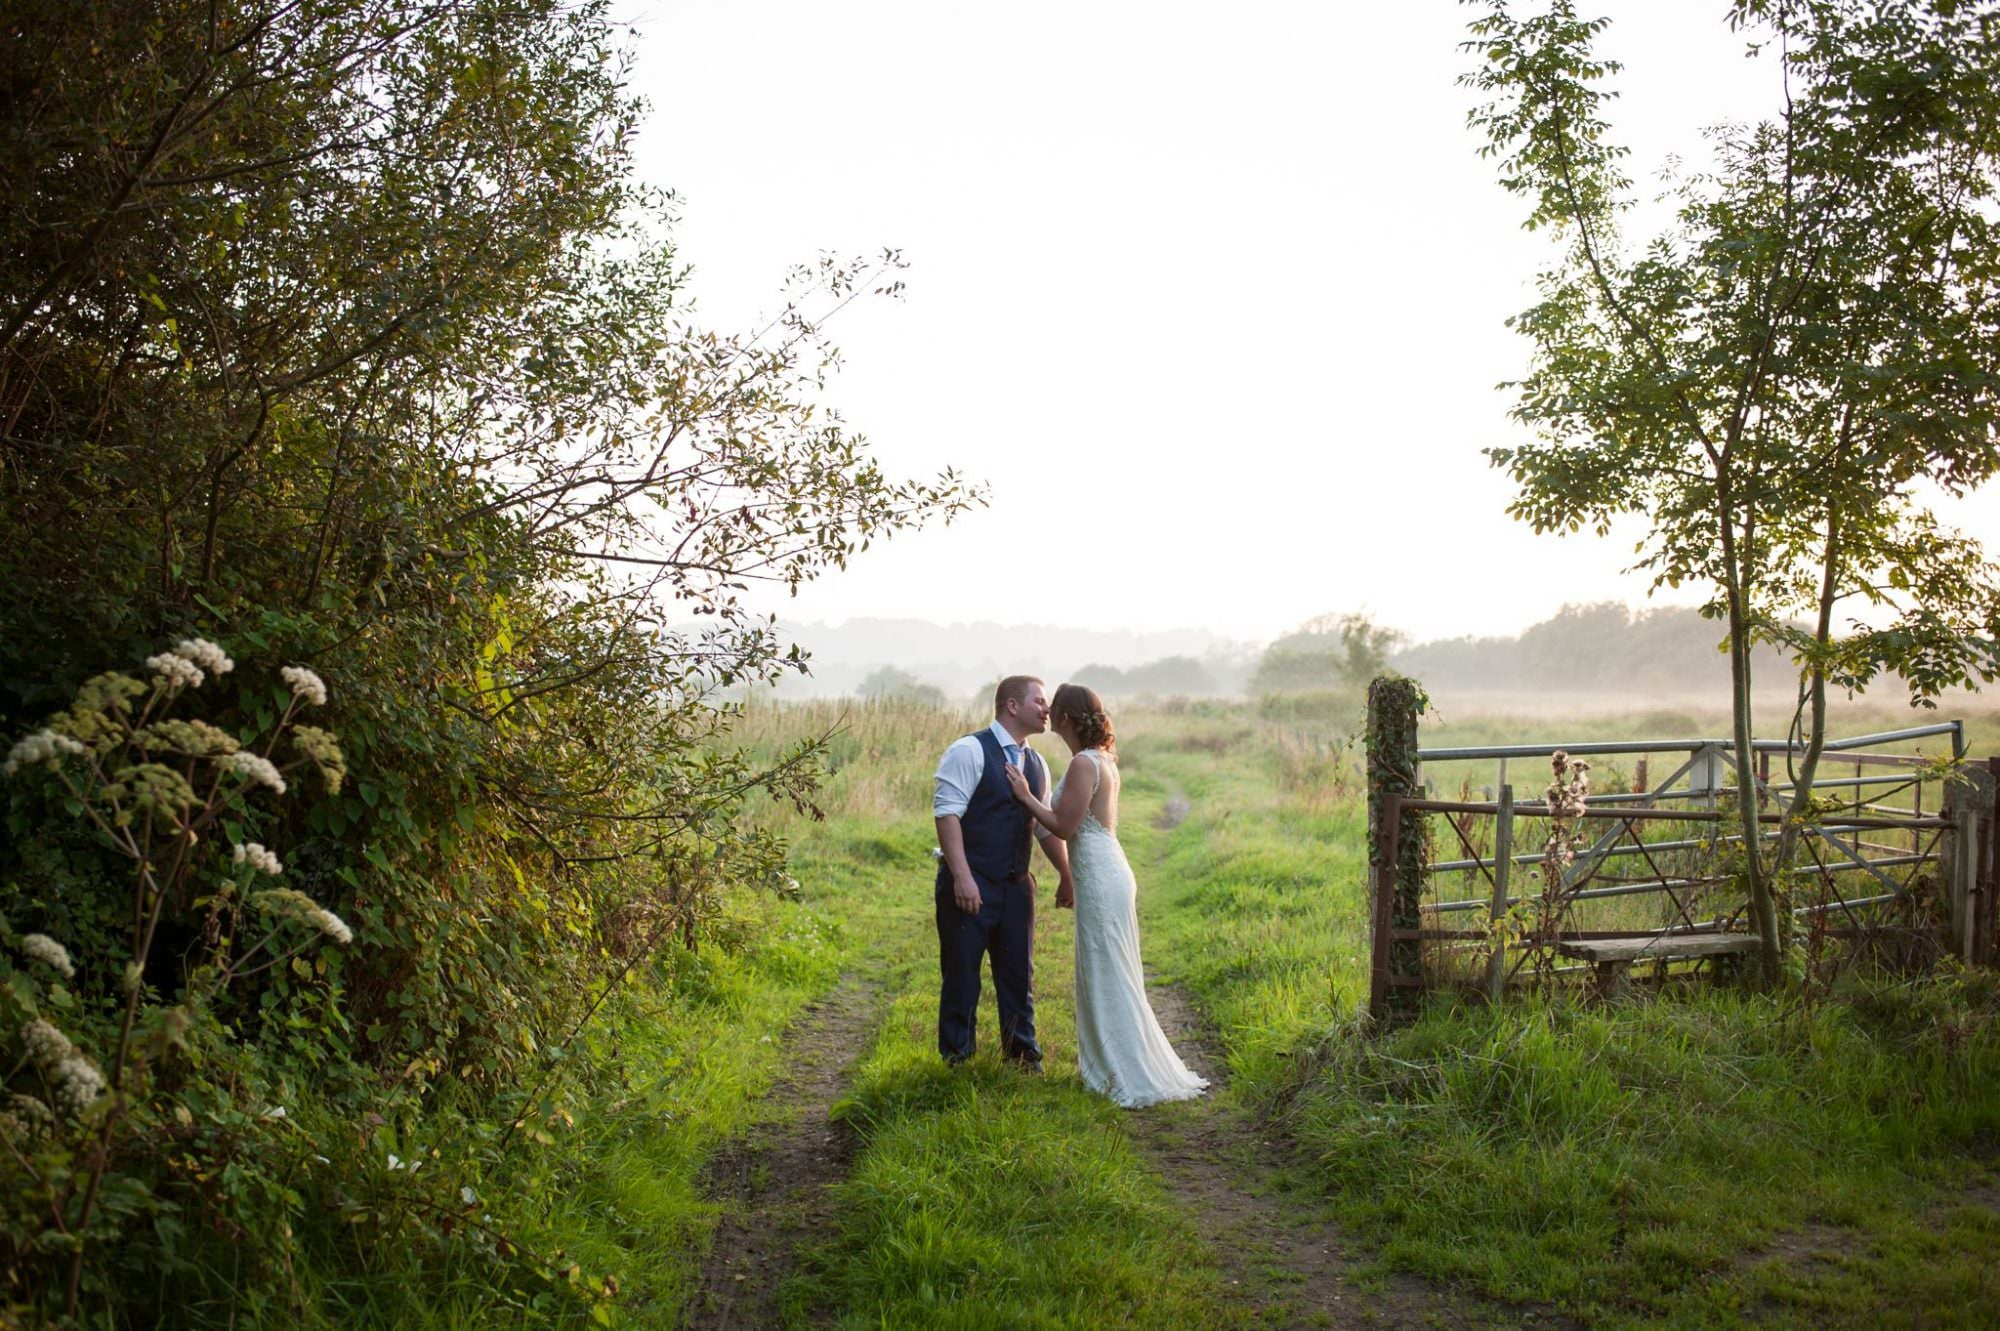 Wedding Photography at Sopley, Dorset